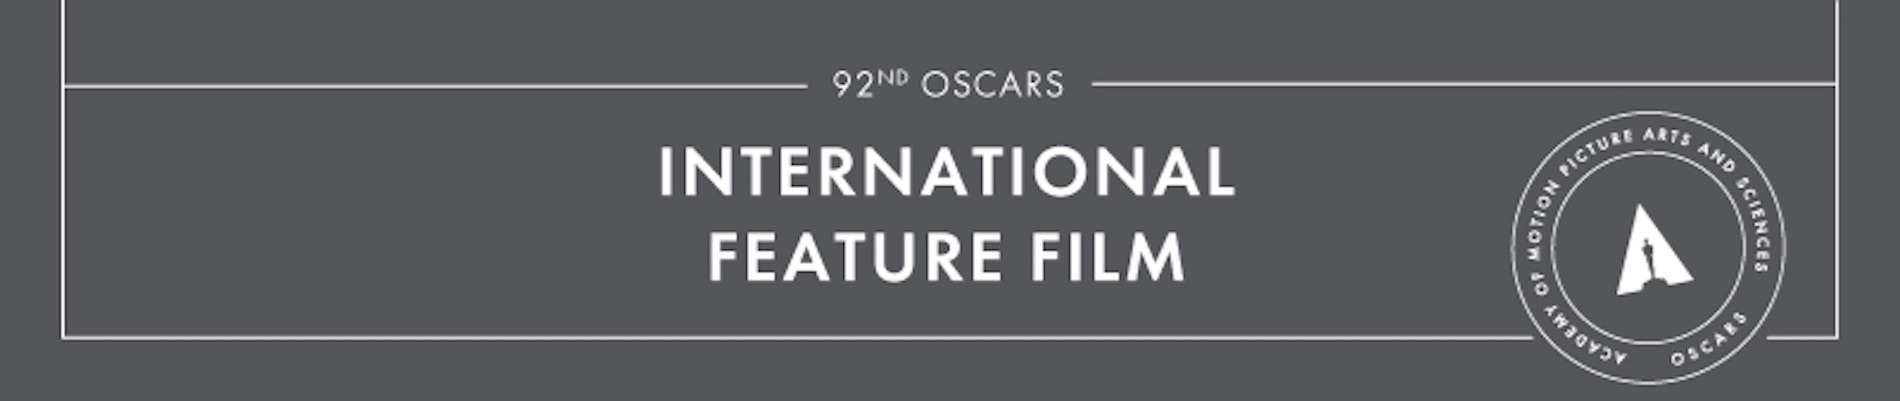 Iff Screenings Weekly Email 2019 V11F0A2